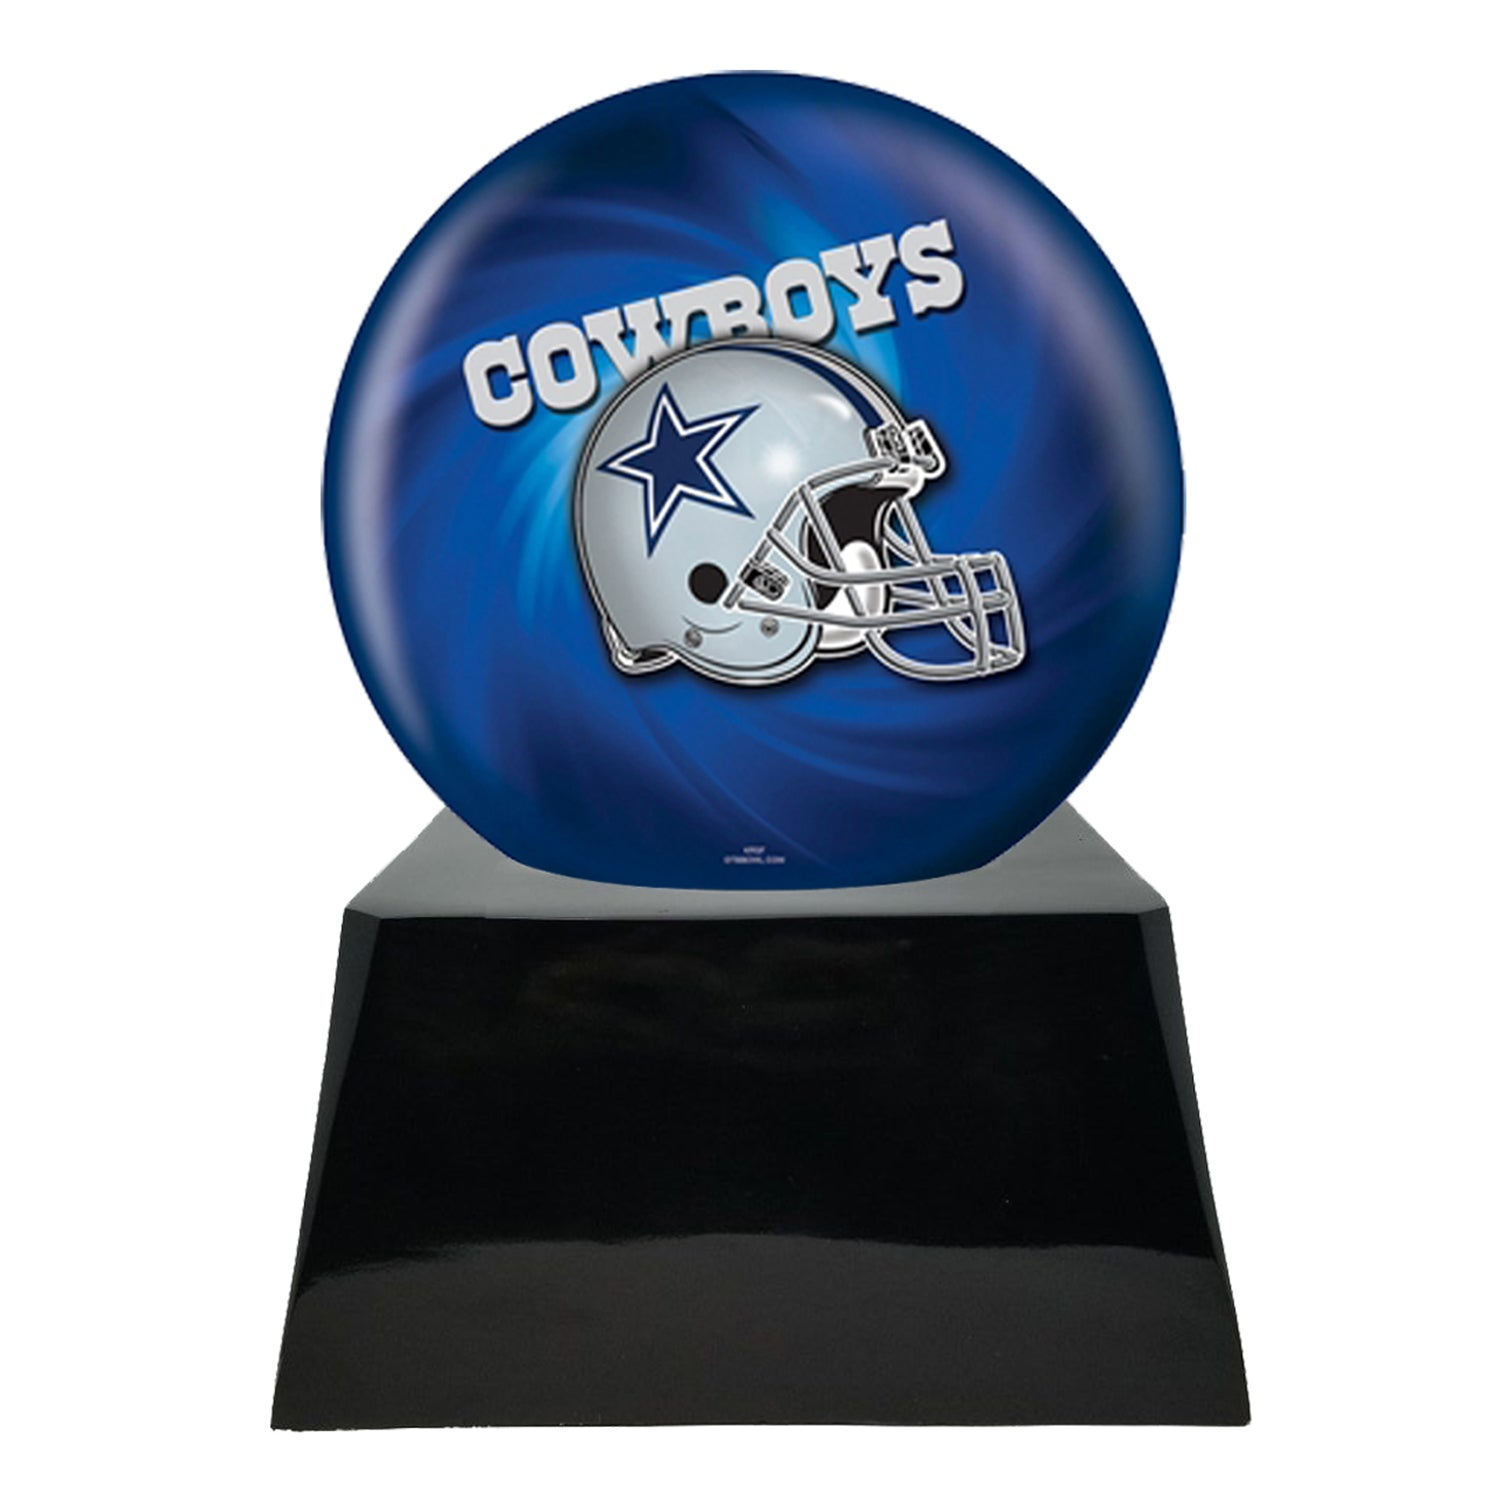 Dallas Cowboys Cremation Urn - Football Team Cremation Urns For Human Ashes - Football Team Adult Urn and Dallas Cowboys Ball Decor with Custom Metal Plaque